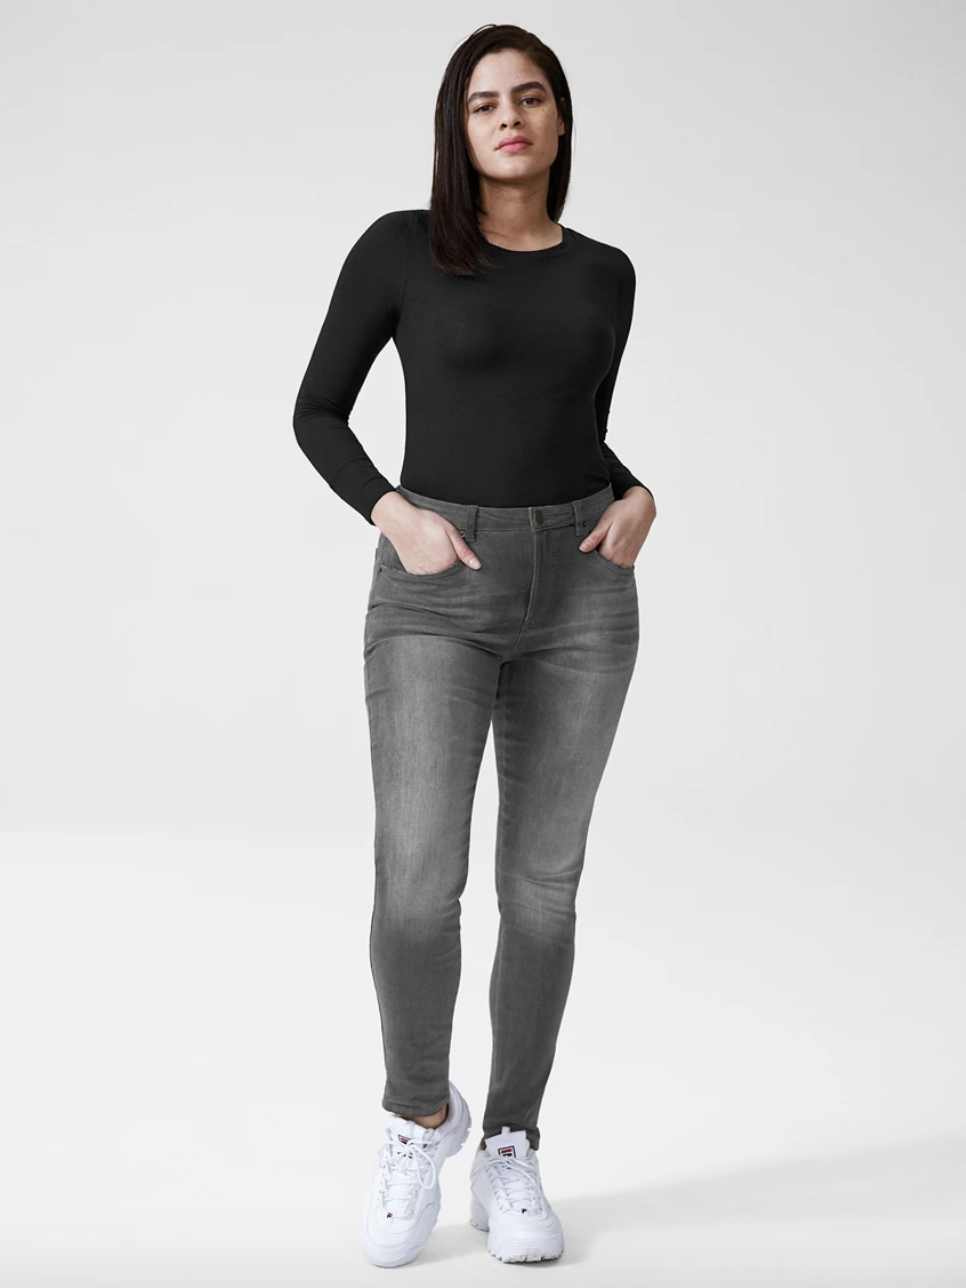 Model wearing the jeans in gray